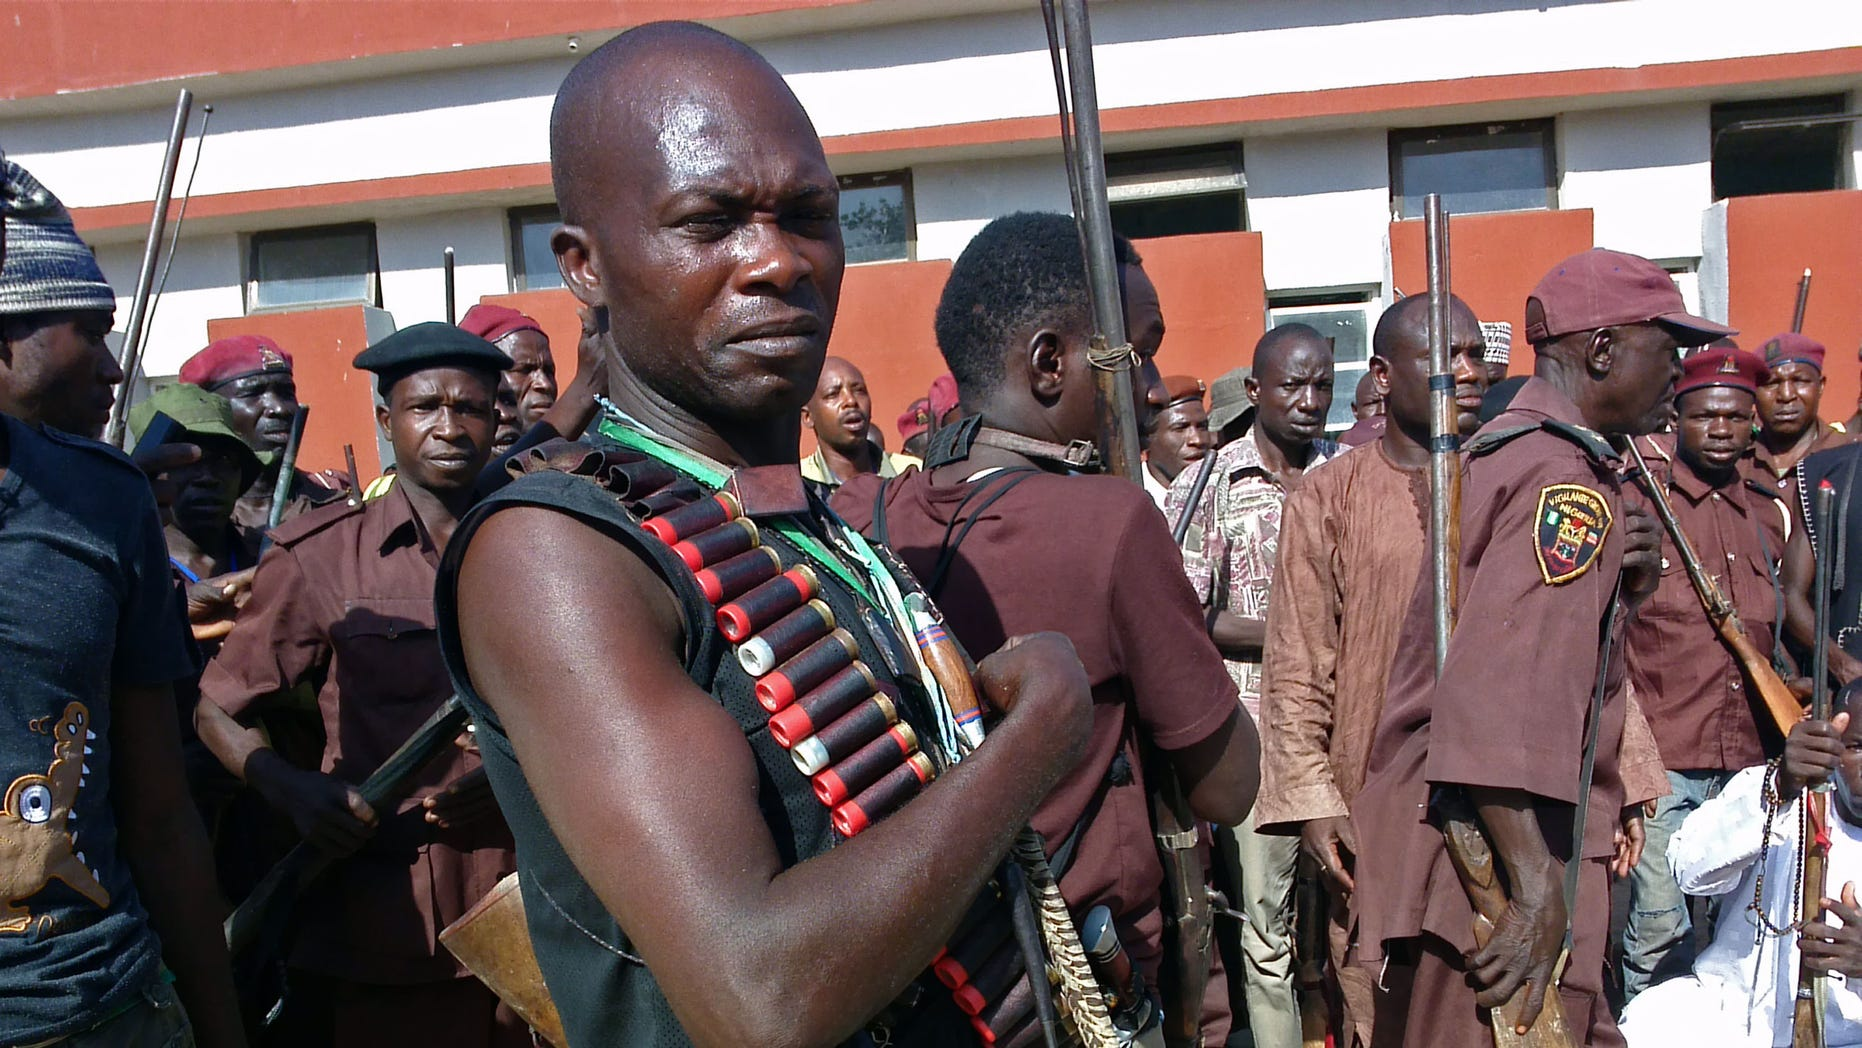 May 18, 2014 - Armed hunters gather before looking for 276 abducted school girls in Maiduguri, Nigeria. Hundreds of hunters armed with homemade rifles, poisoned arrows and amulets say their spiritual powers can lead them to the girls abducted by Islamic extremists.